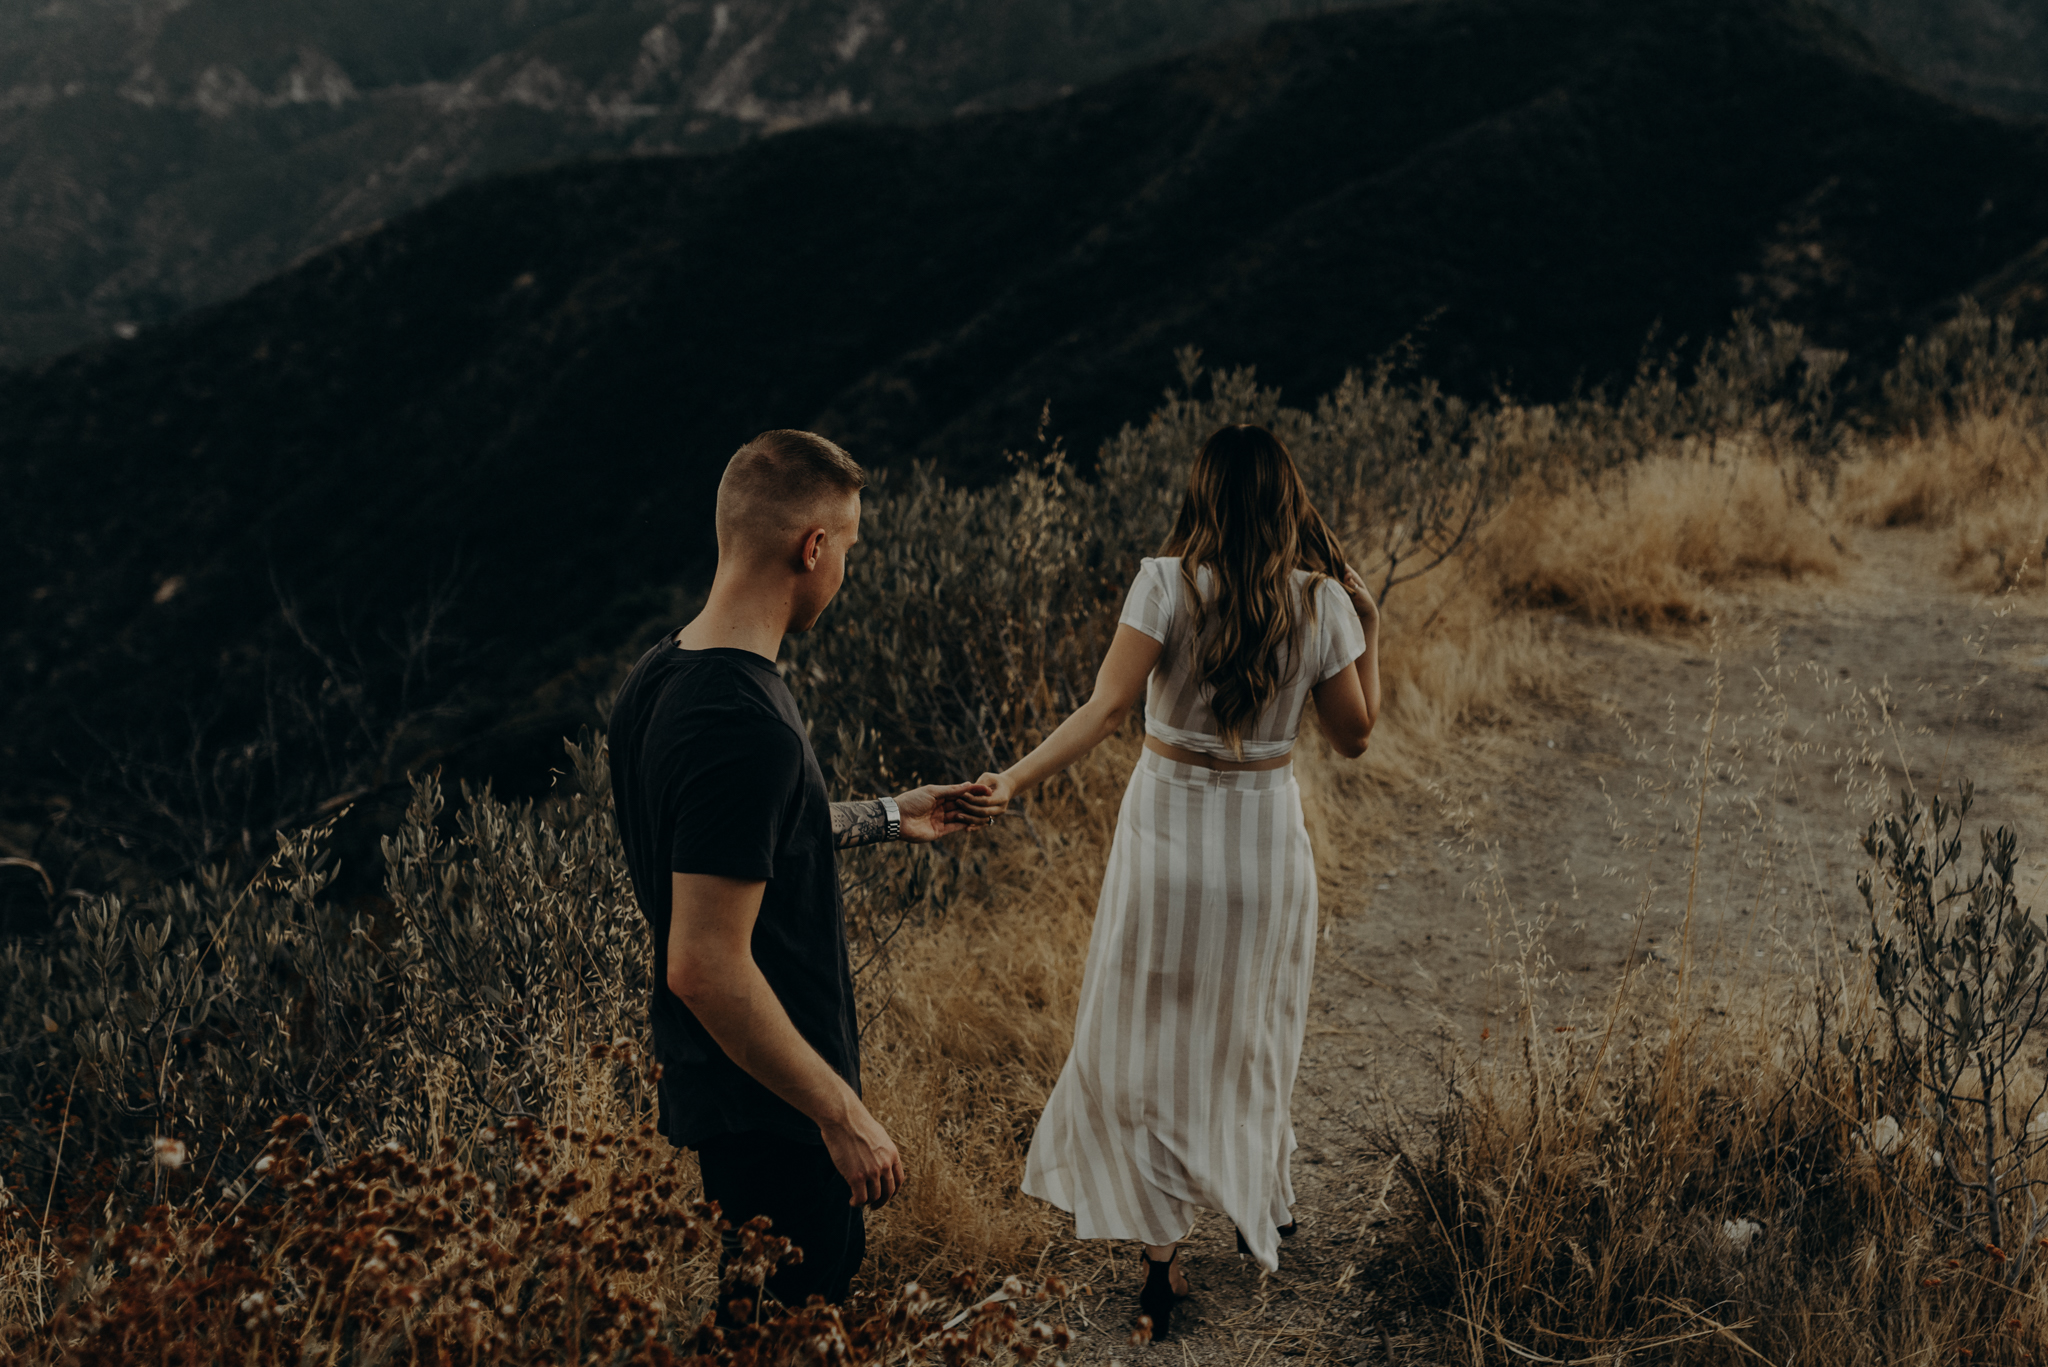 Isaiah + Taylor Photography - Los Angeles Forest Engagement Session - Laid back wedding photographer-018.jpg